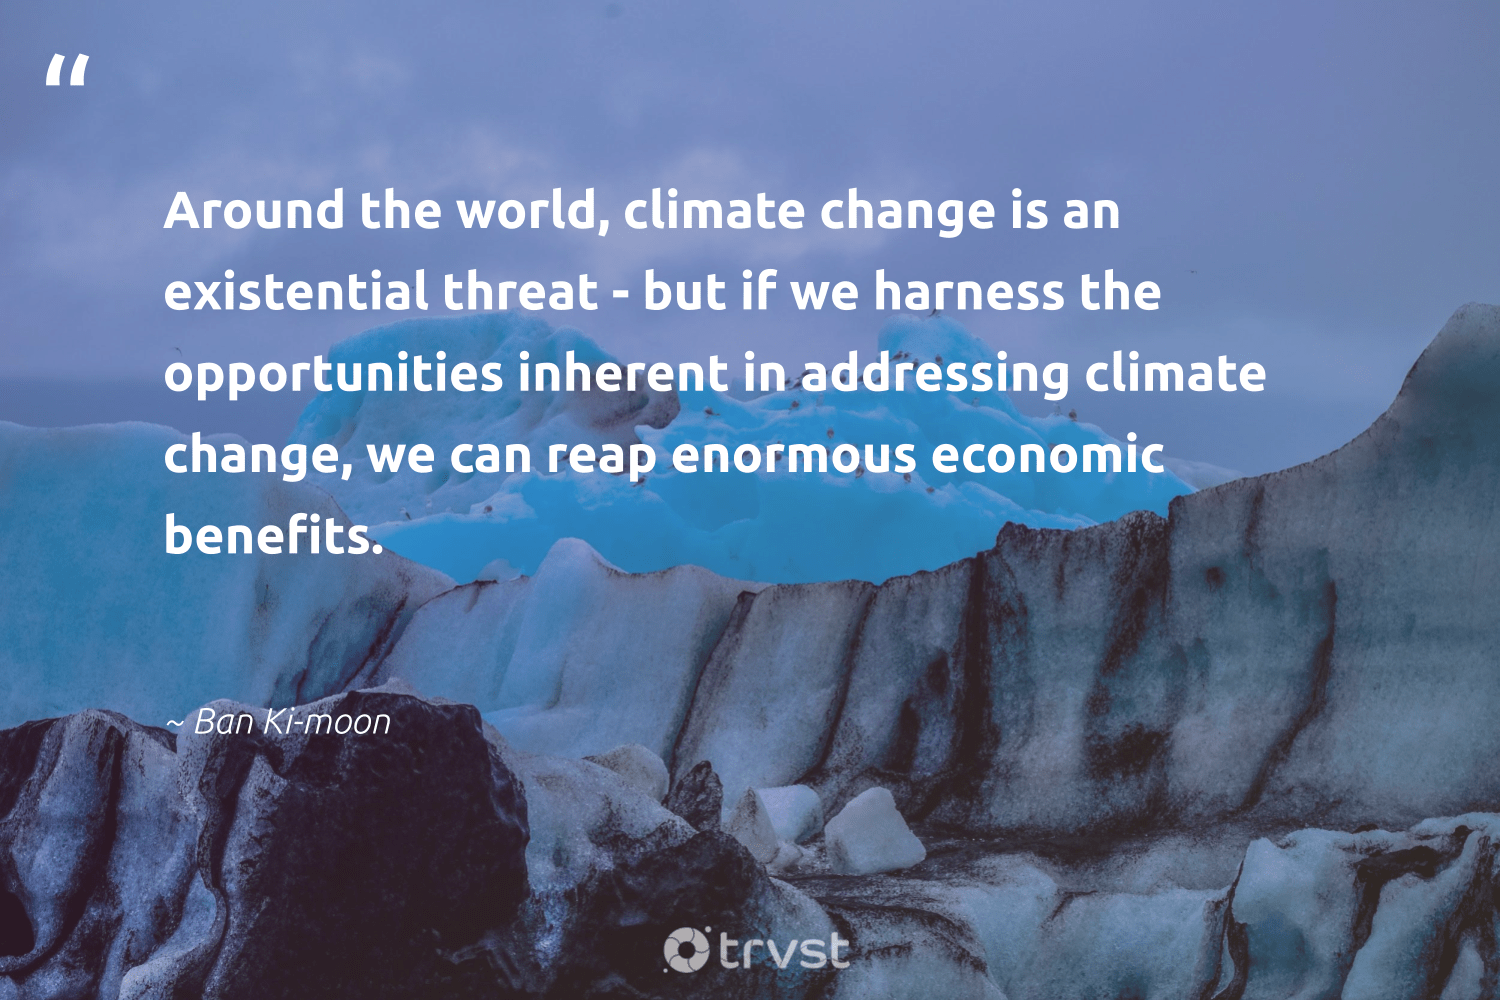 """""""Around the world, climate change is an existential threat - but if we harness the opportunities inherent in addressing climate change, we can reap enormous economic benefits.""""  - Ban Ki-moon #trvst #quotes #climatechange #climate #actonclimate #co2 #globalwarming #climatechangeisreal #socialimpact #cop21 #carbonemissions #climateaction"""